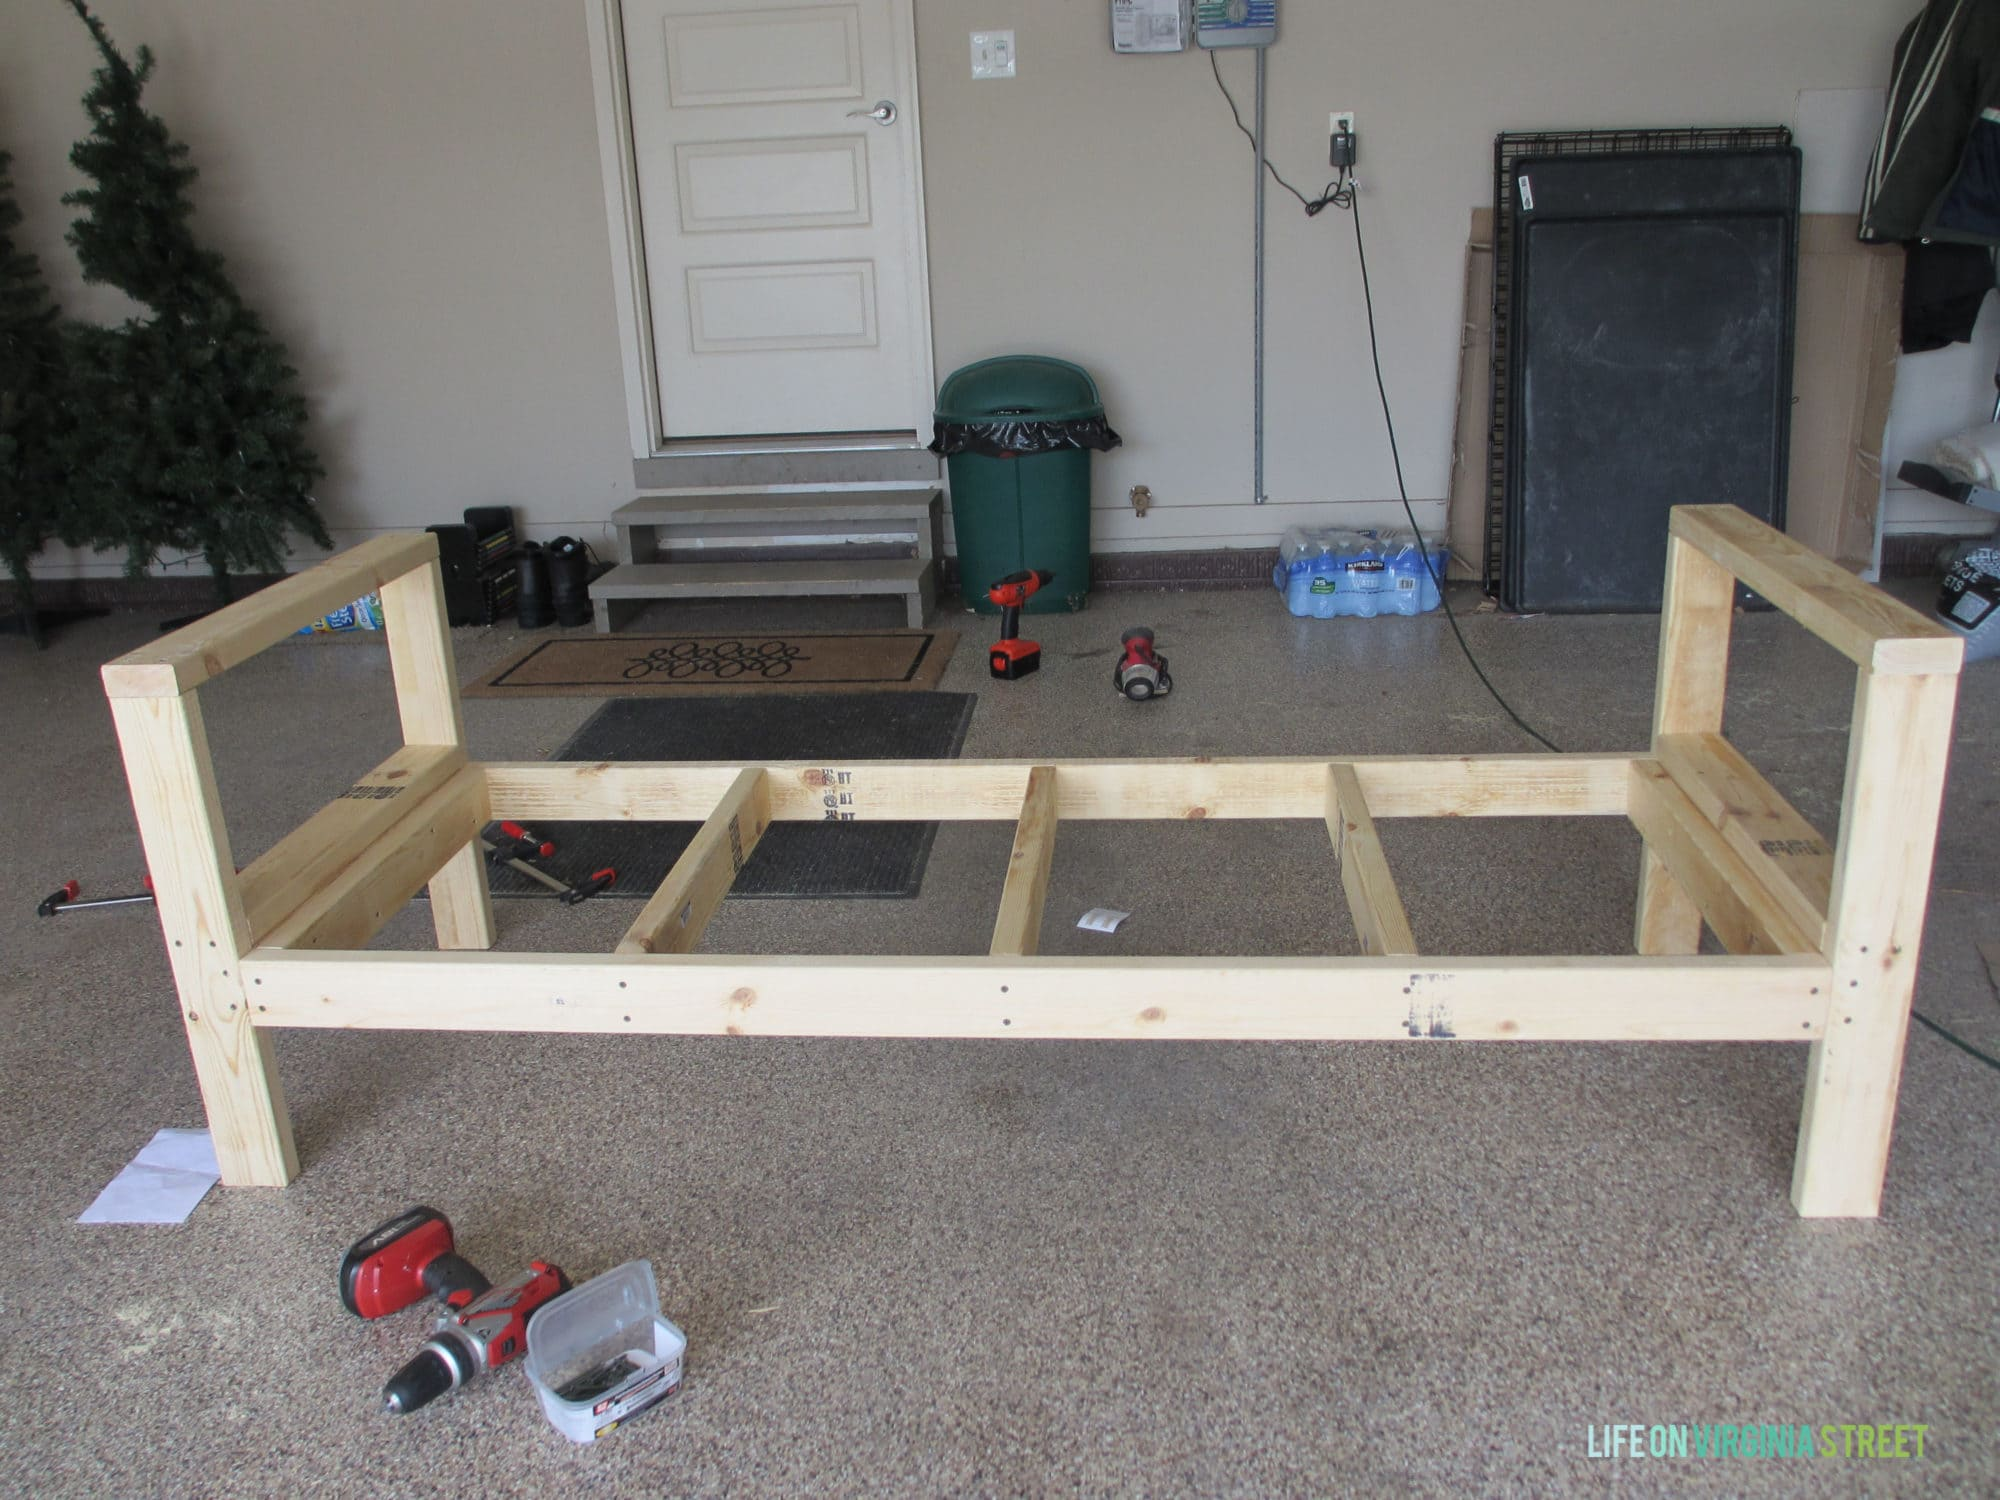 How to build a diy outdoor couch life on virginia street for Diy timber frame plans